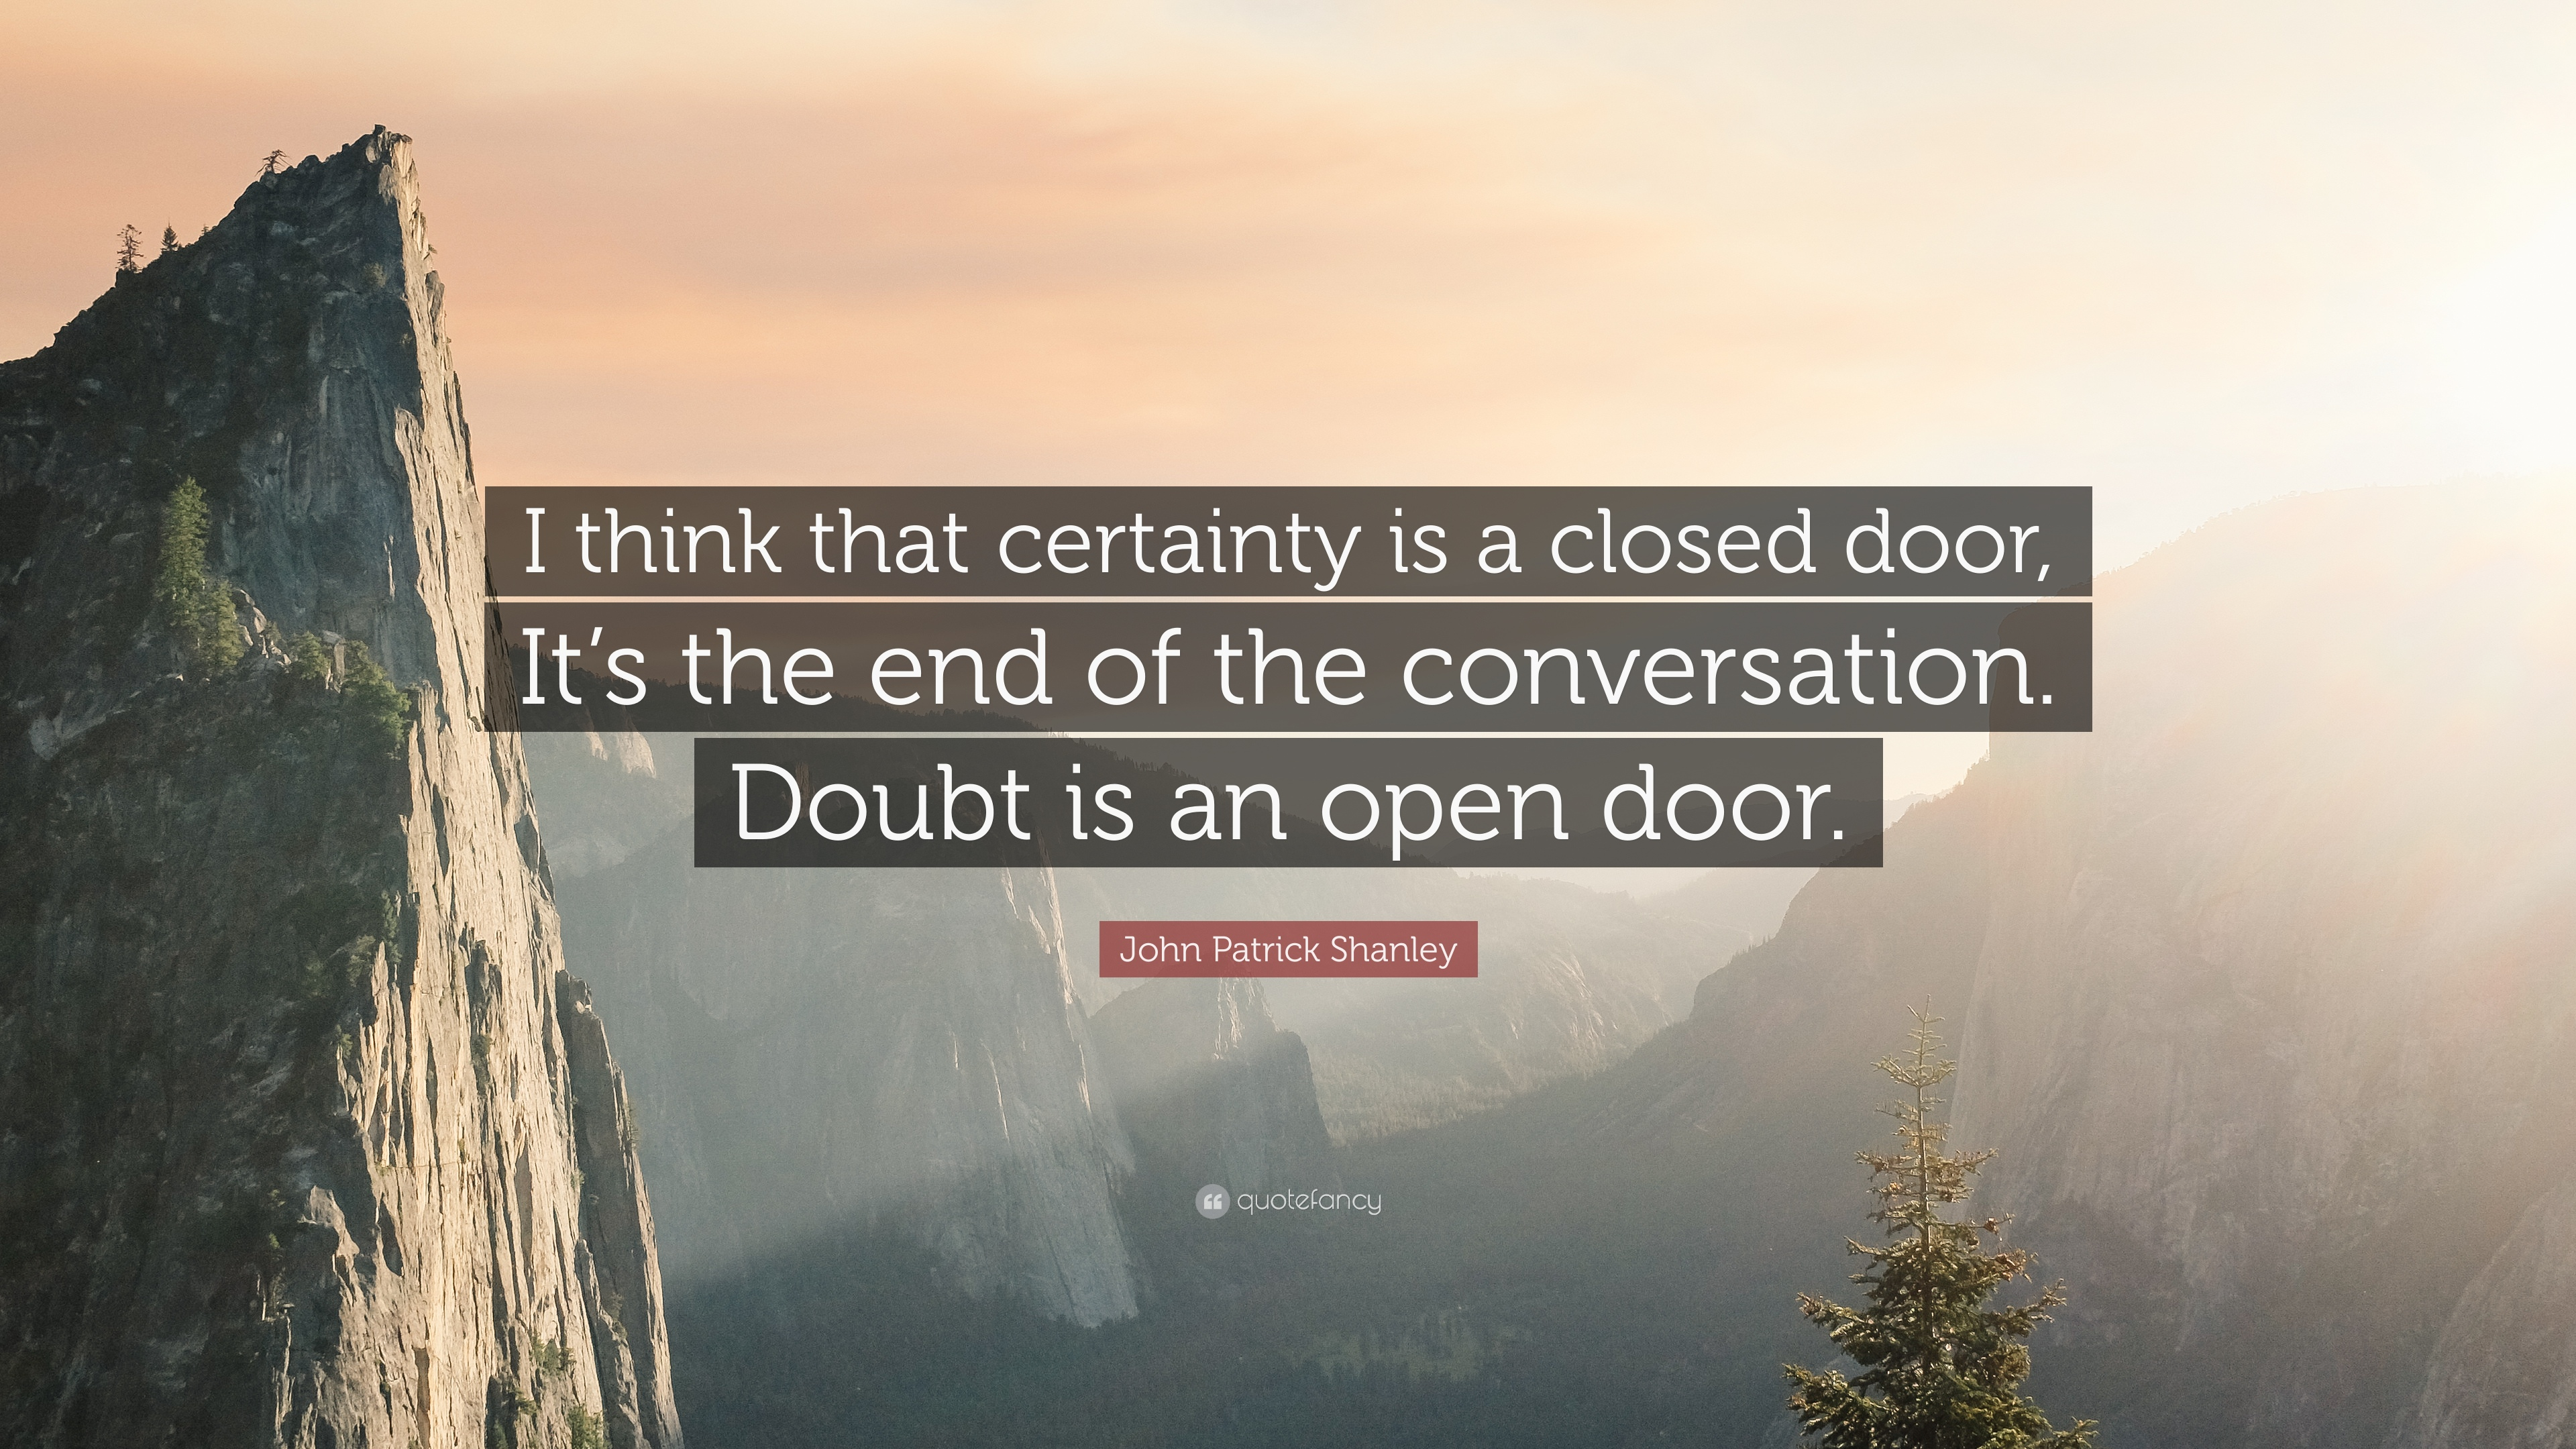 John Patrick Shanley Quote: U201cI Think That Certainty Is A Closed Door, Itu0027s